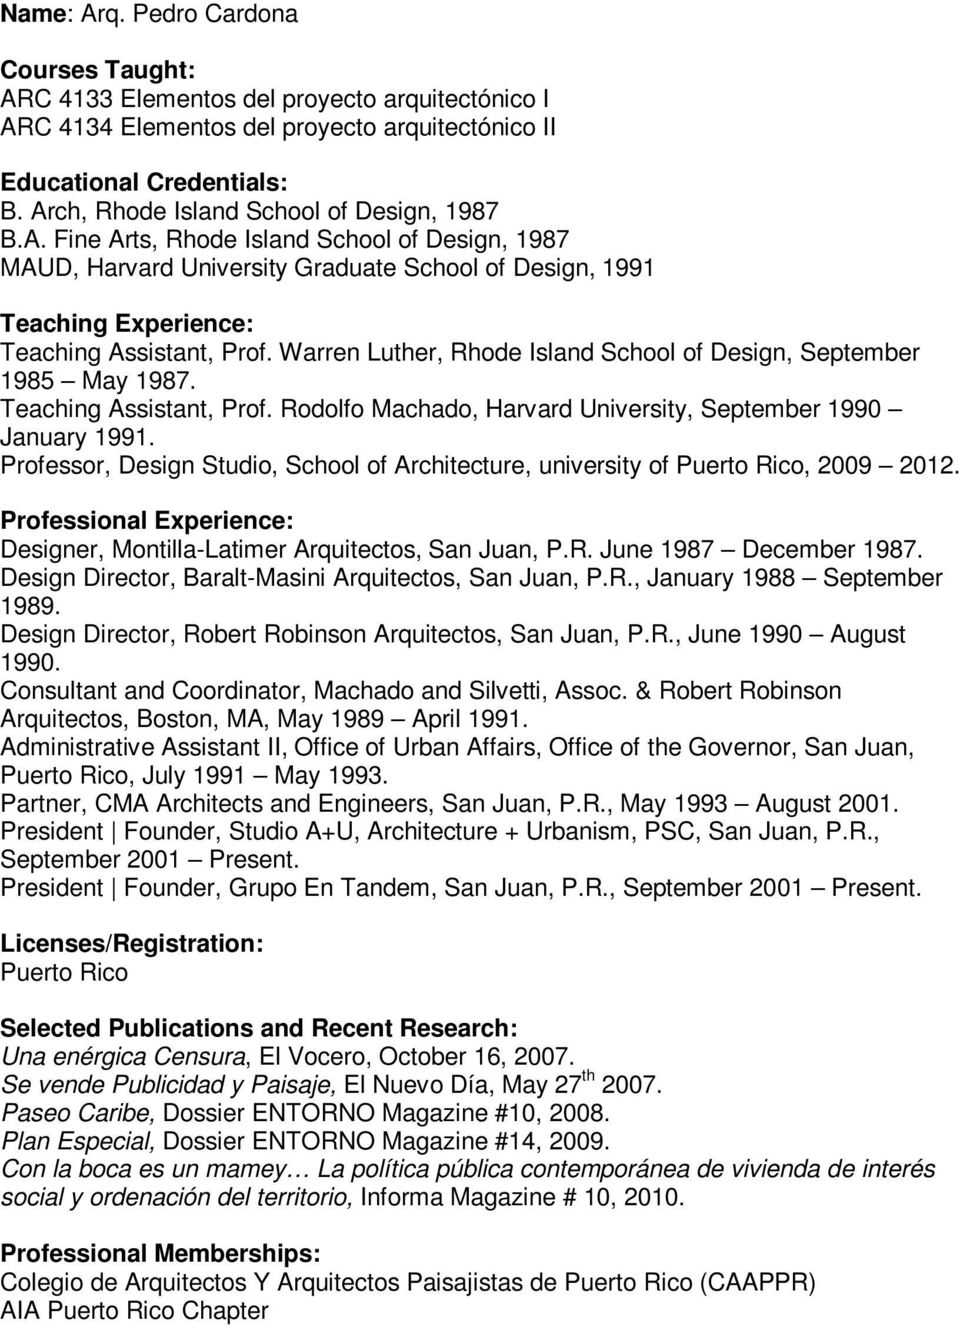 Professor, Design Studio, School of Architecture, university of Puerto Rico, 2009 2012. Designer, Montilla-Latimer Arquitectos, San Juan, P.R. June 1987 December 1987.